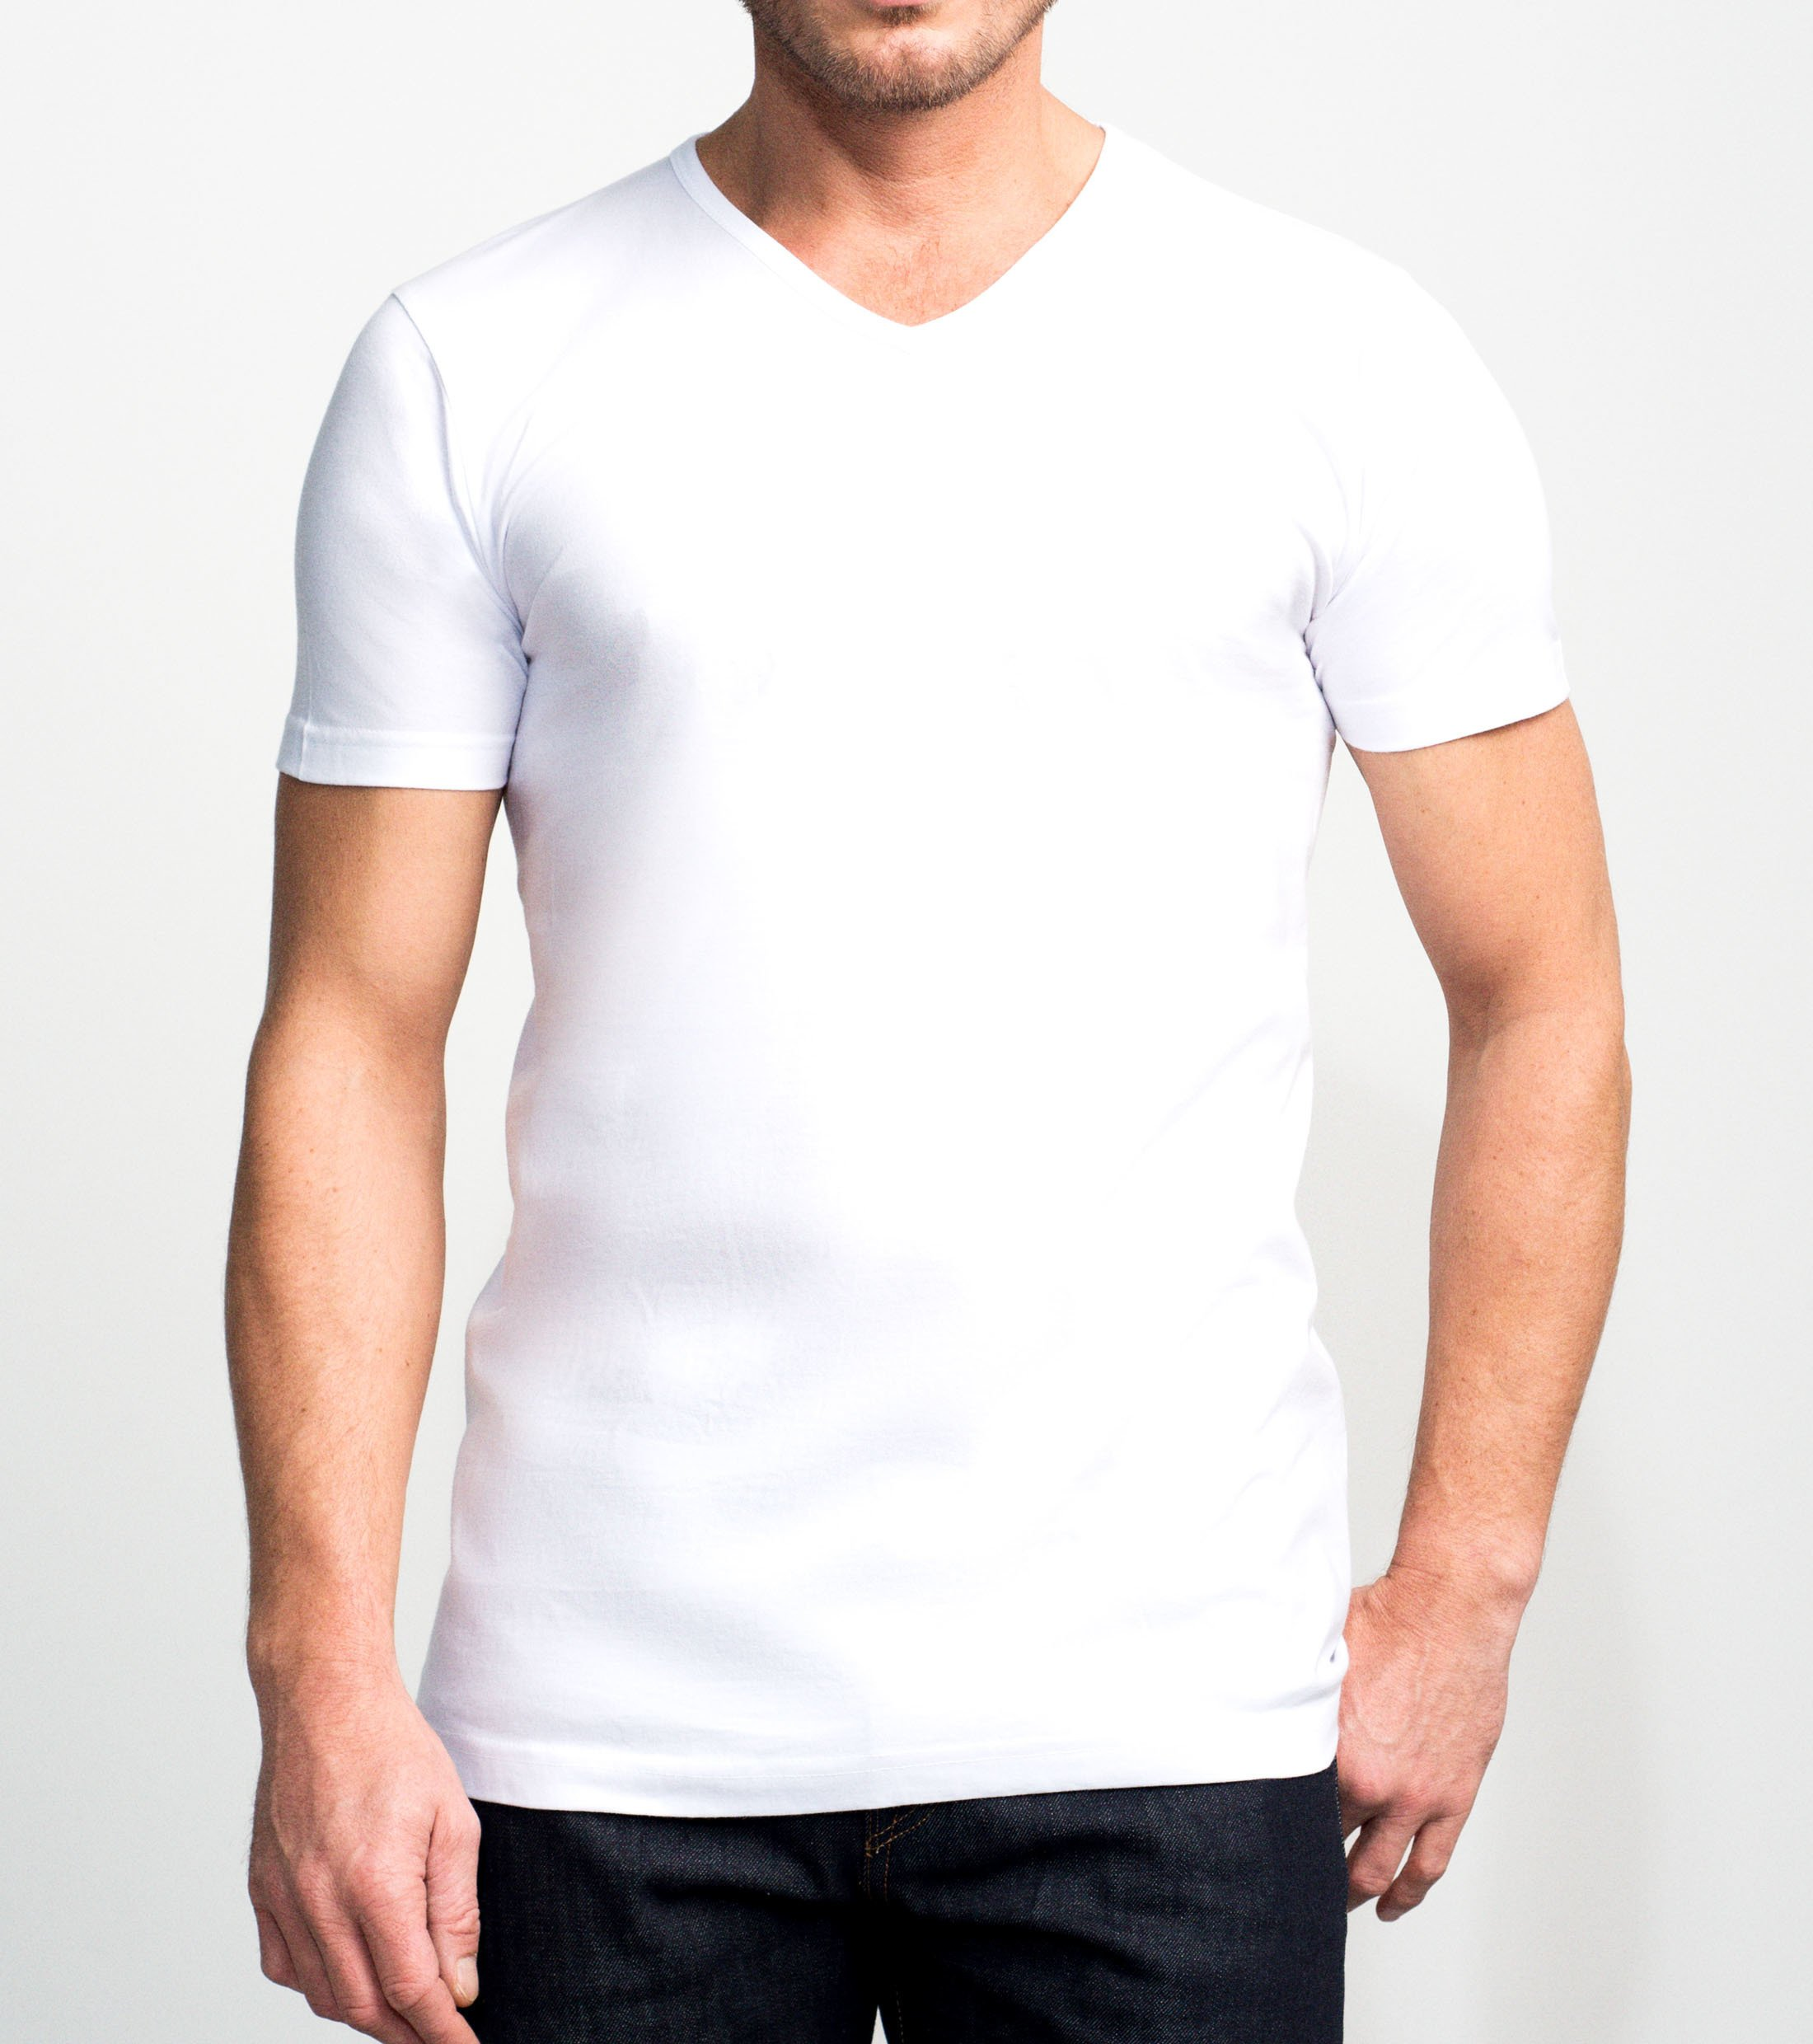 Slater 2-pack Basic Fit T-shirt V-neck White foto 2